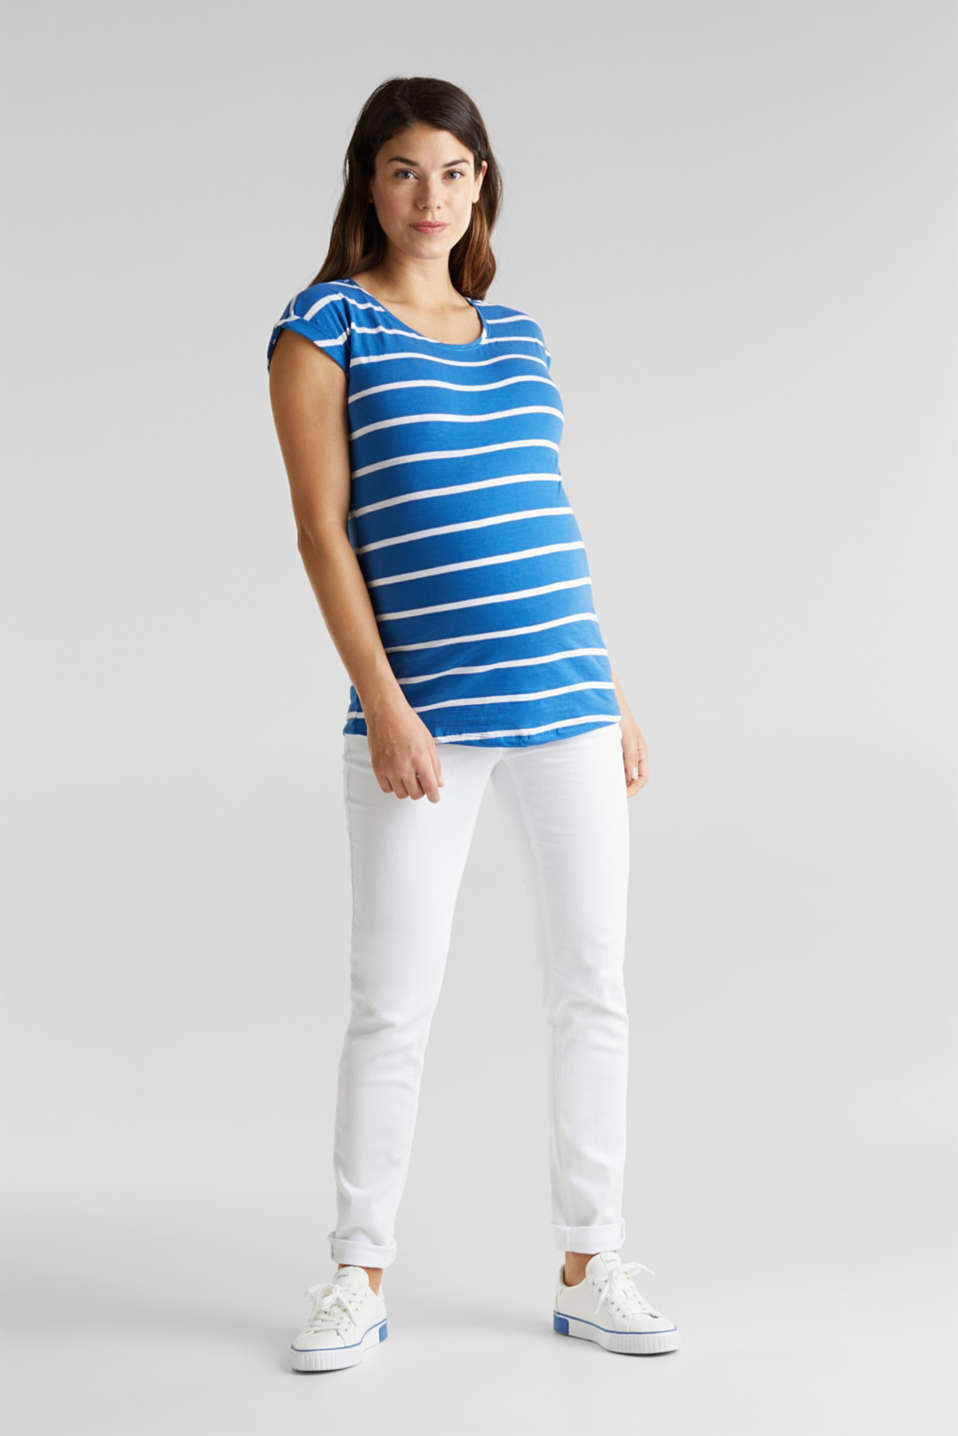 T-shirt with stripes, 100% cotton, LCGREY BLUE, detail image number 1